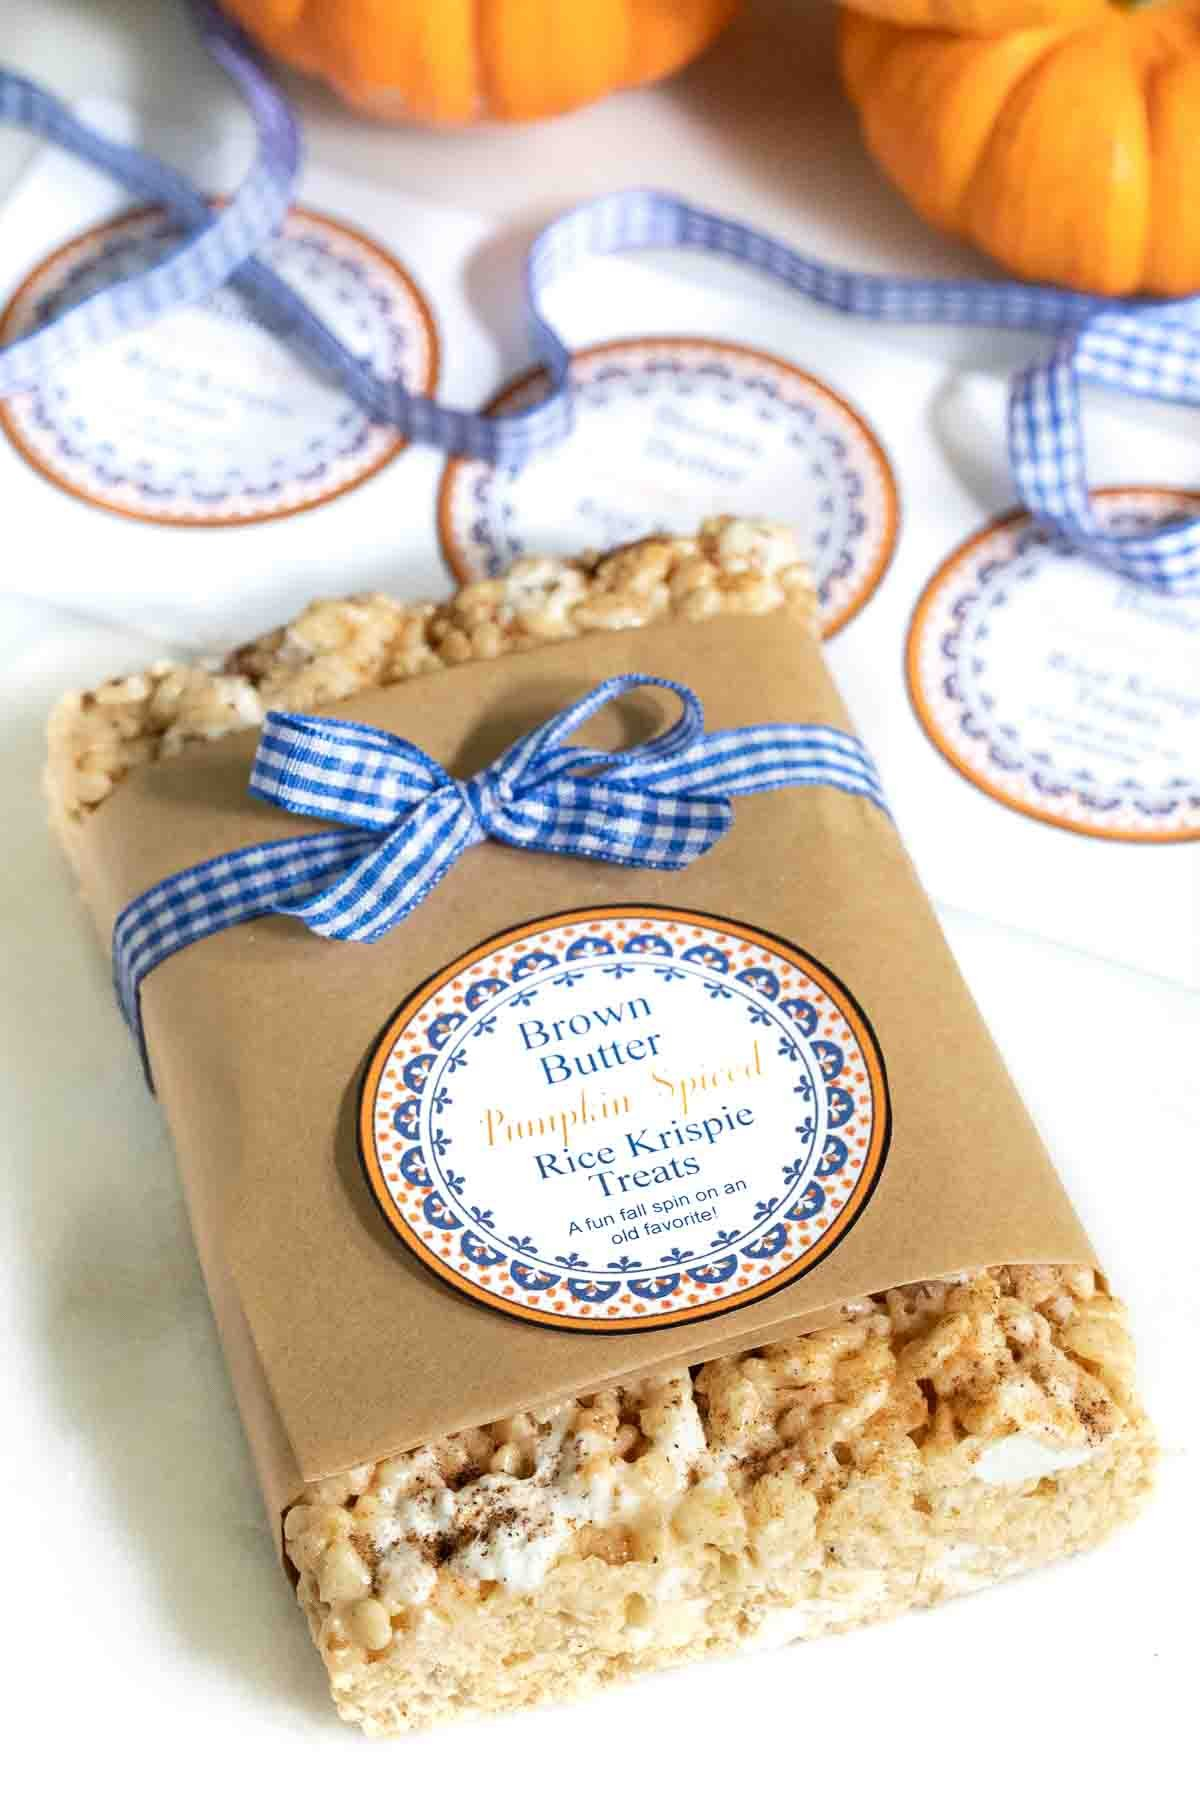 Vertical photo of Pumpkin Spiced Brown Butter Rice Krispie Treats packaged for gift giving with a custom label and wrapped in blue and white checkered ribbon.